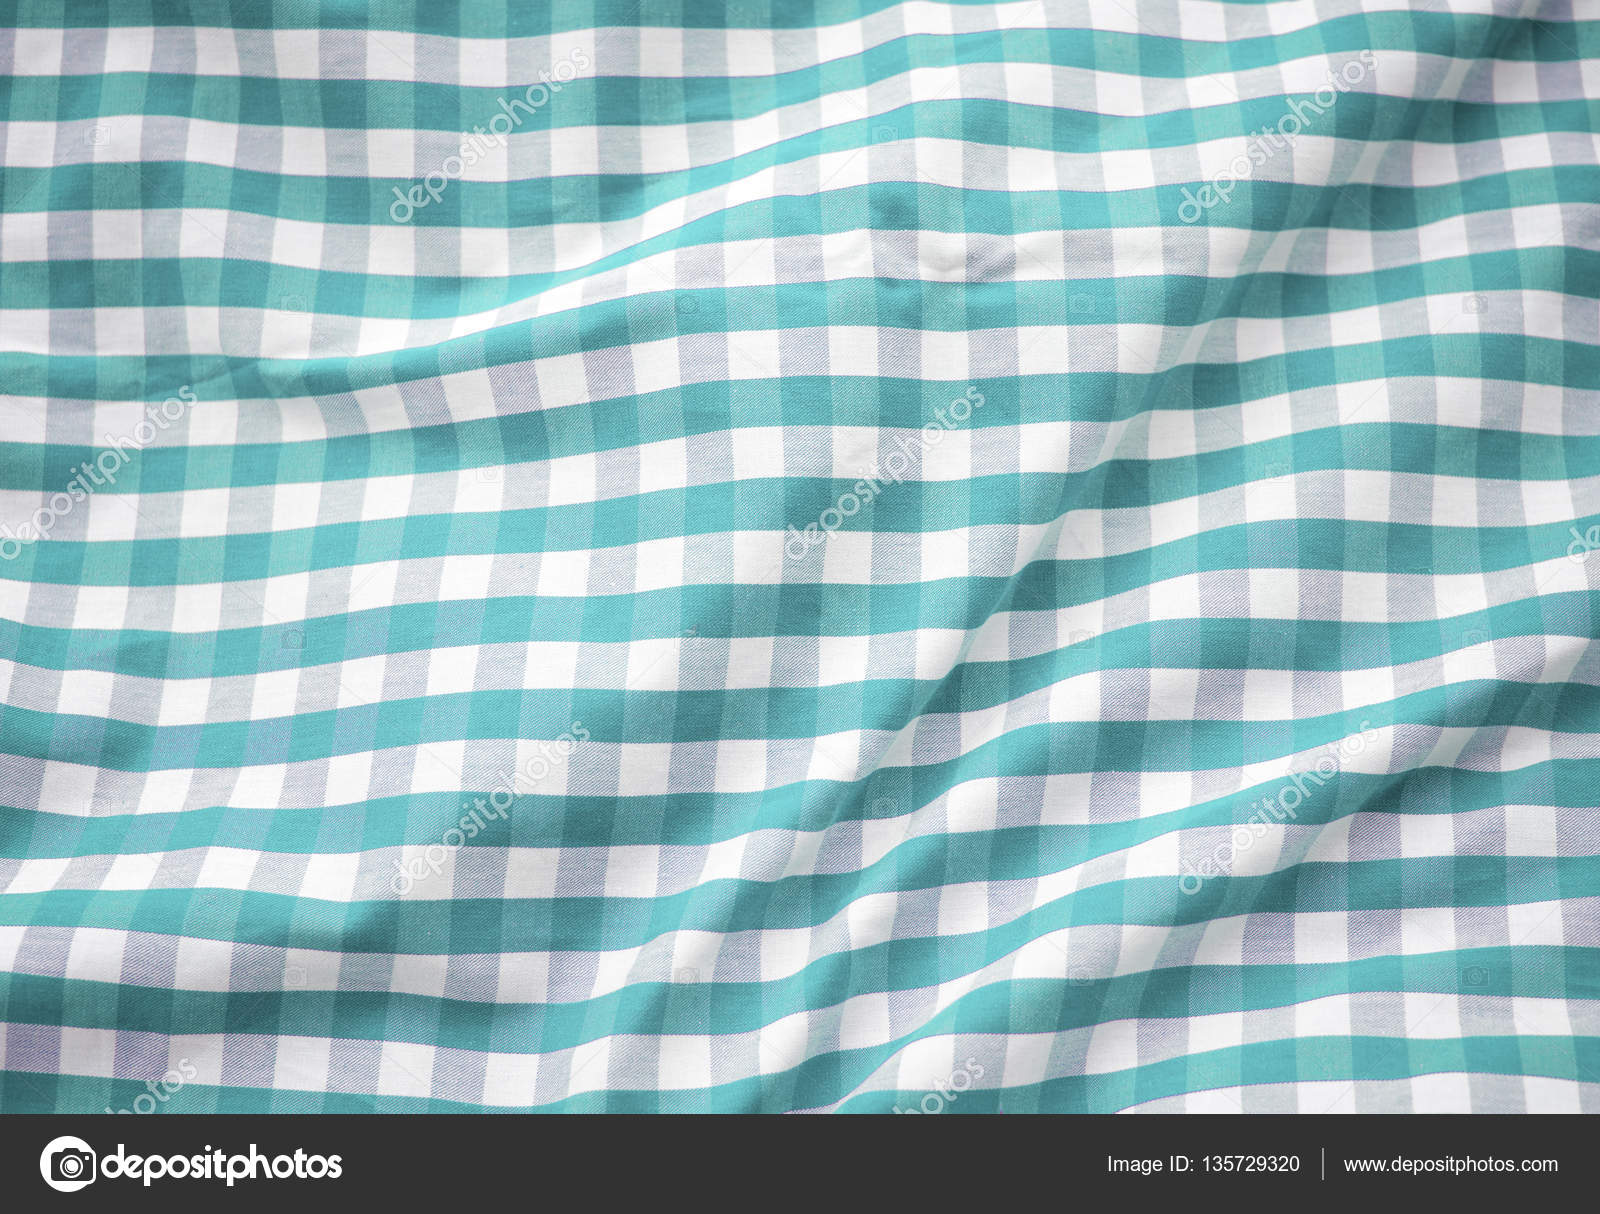 Green Checkered Tablecloth U2014 Stock Photo #135729320